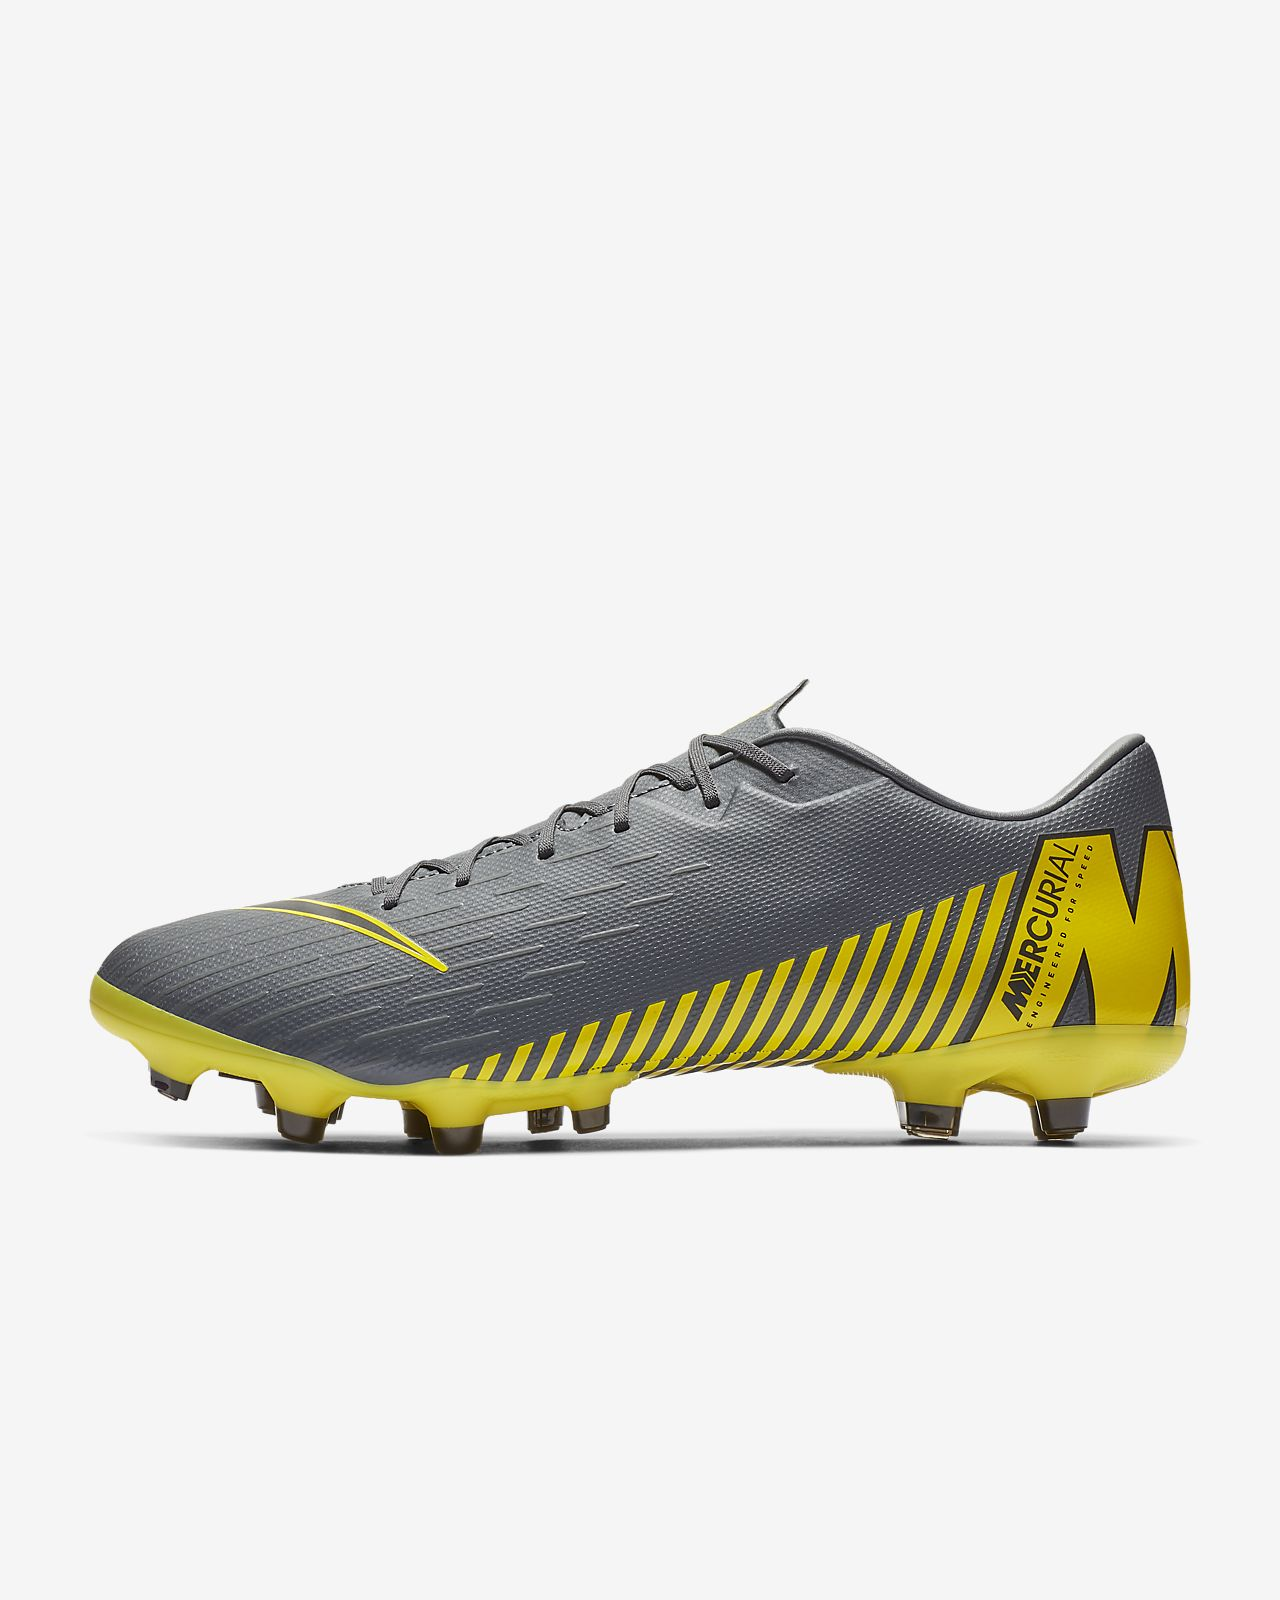 Nike Vapor 12 Academy MG Multi-Ground Soccer Cleat. Nike.com 9ef0a60f7731